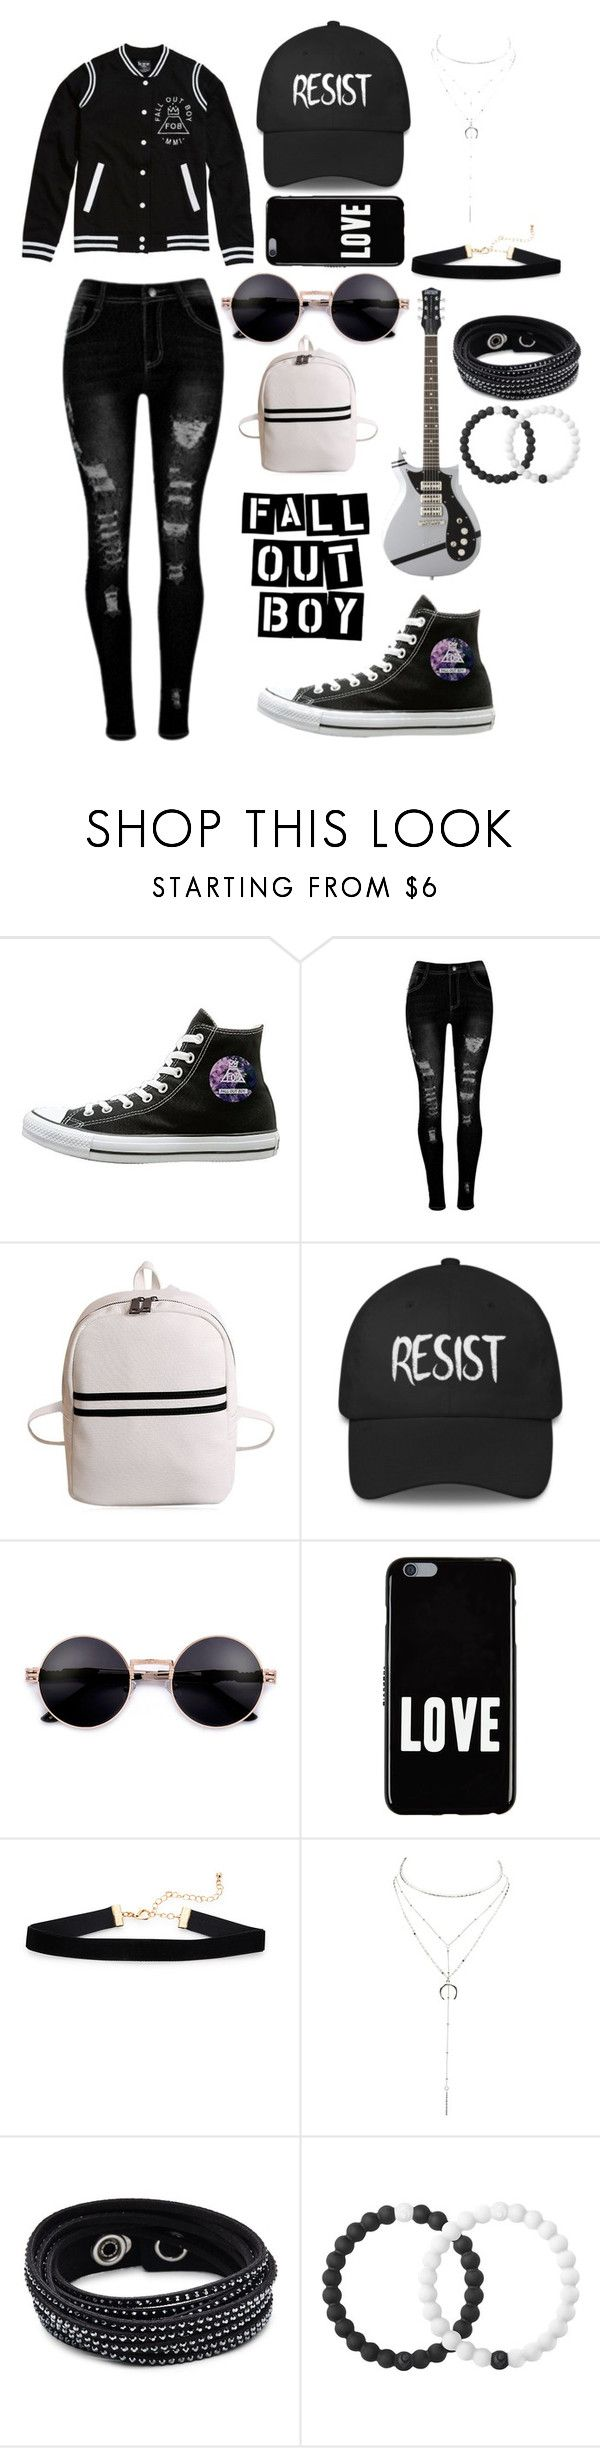 """Fall out boy"" by sdworaczyk ❤ liked on Polyvore featuring Hot Topic, Givenchy, Charlotte Russe, Swarovski and Lokai"